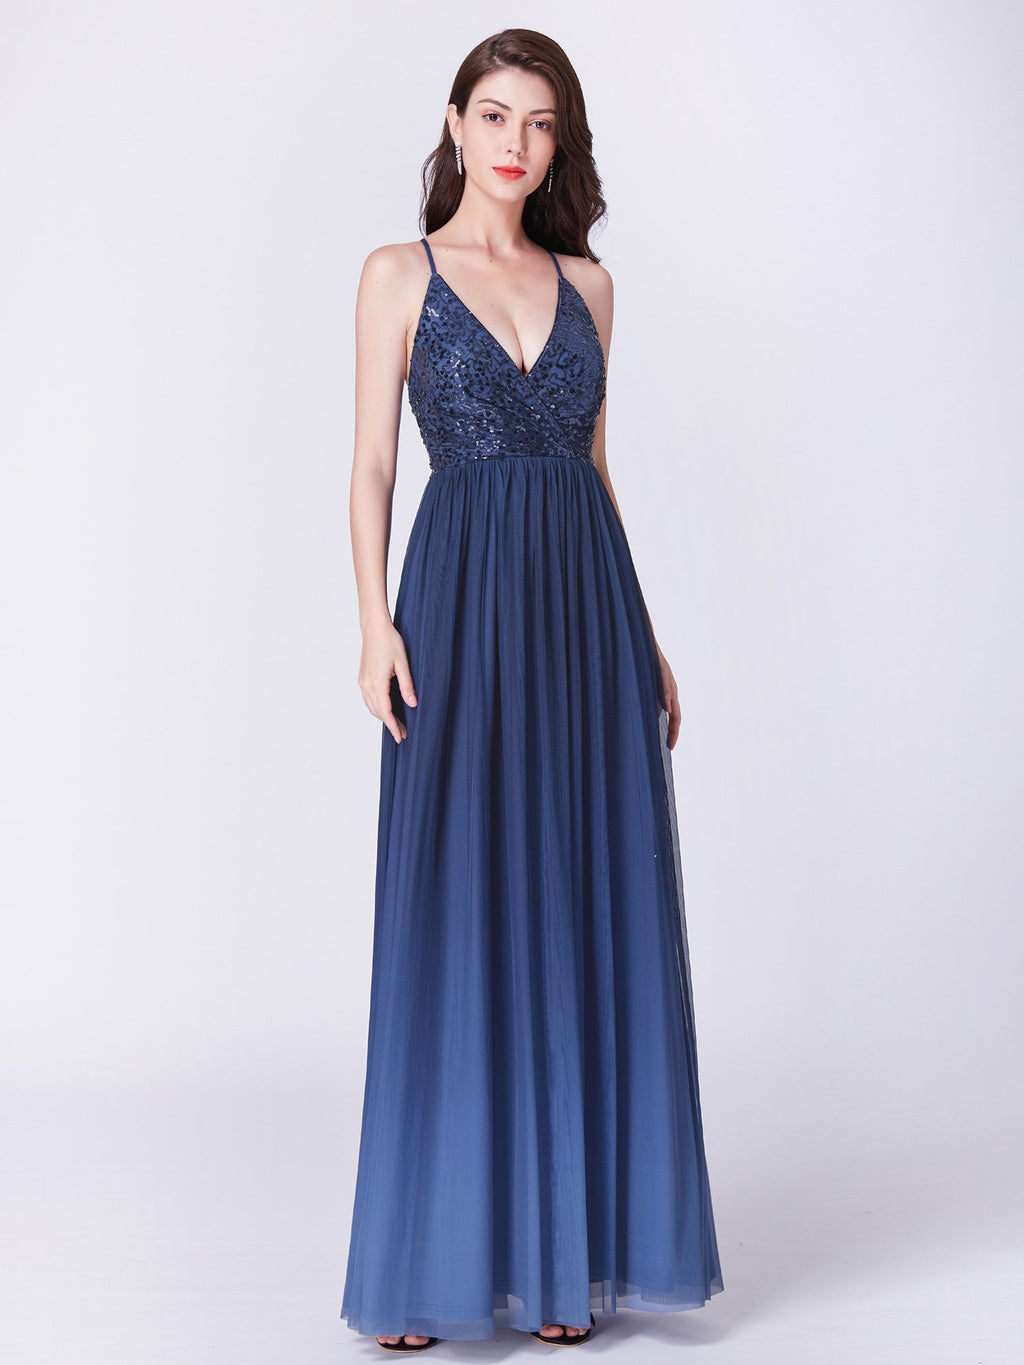 Deep V Neck Sexy Gorgeous Evening Dress Navy Blue